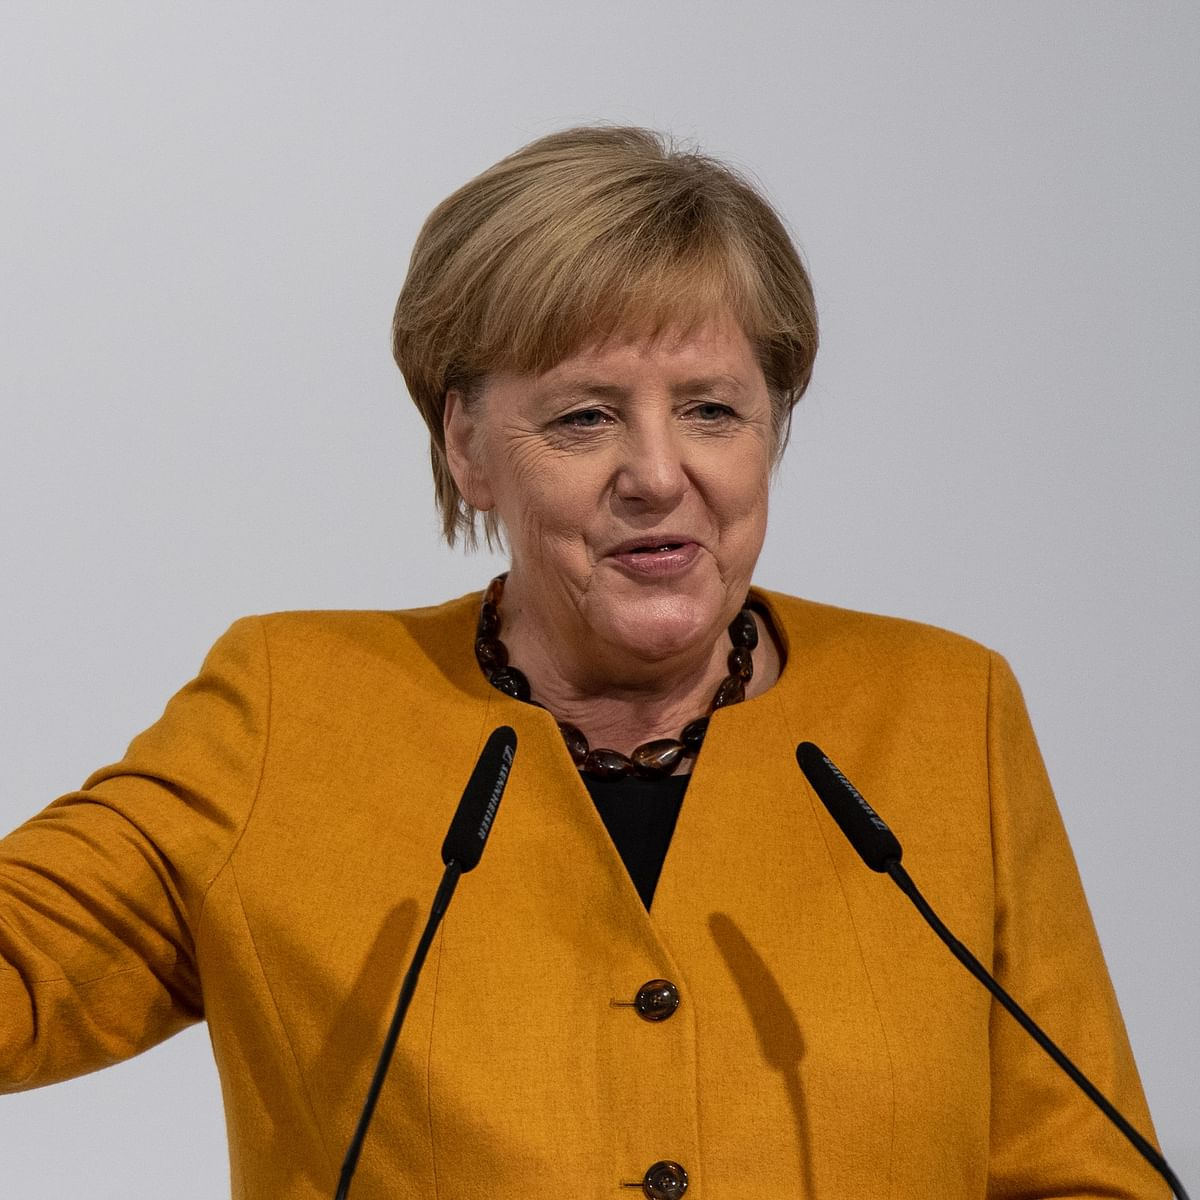 Angela Merkel warns UK Brexit deal unlikely without compromise